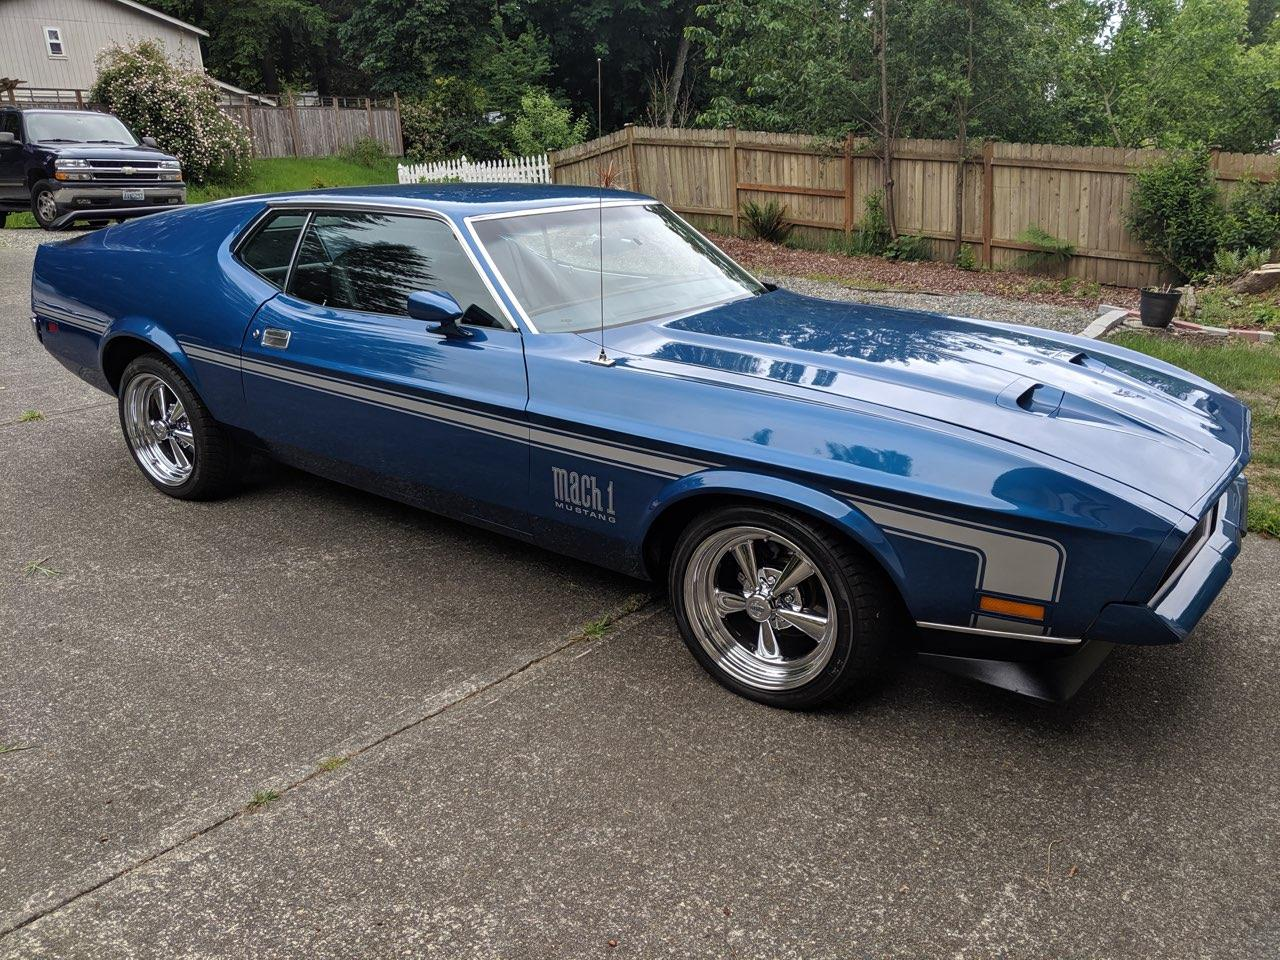 1972 Ford Mustang Mach 1 (CC-1251957) for sale in TACOMA, Washington